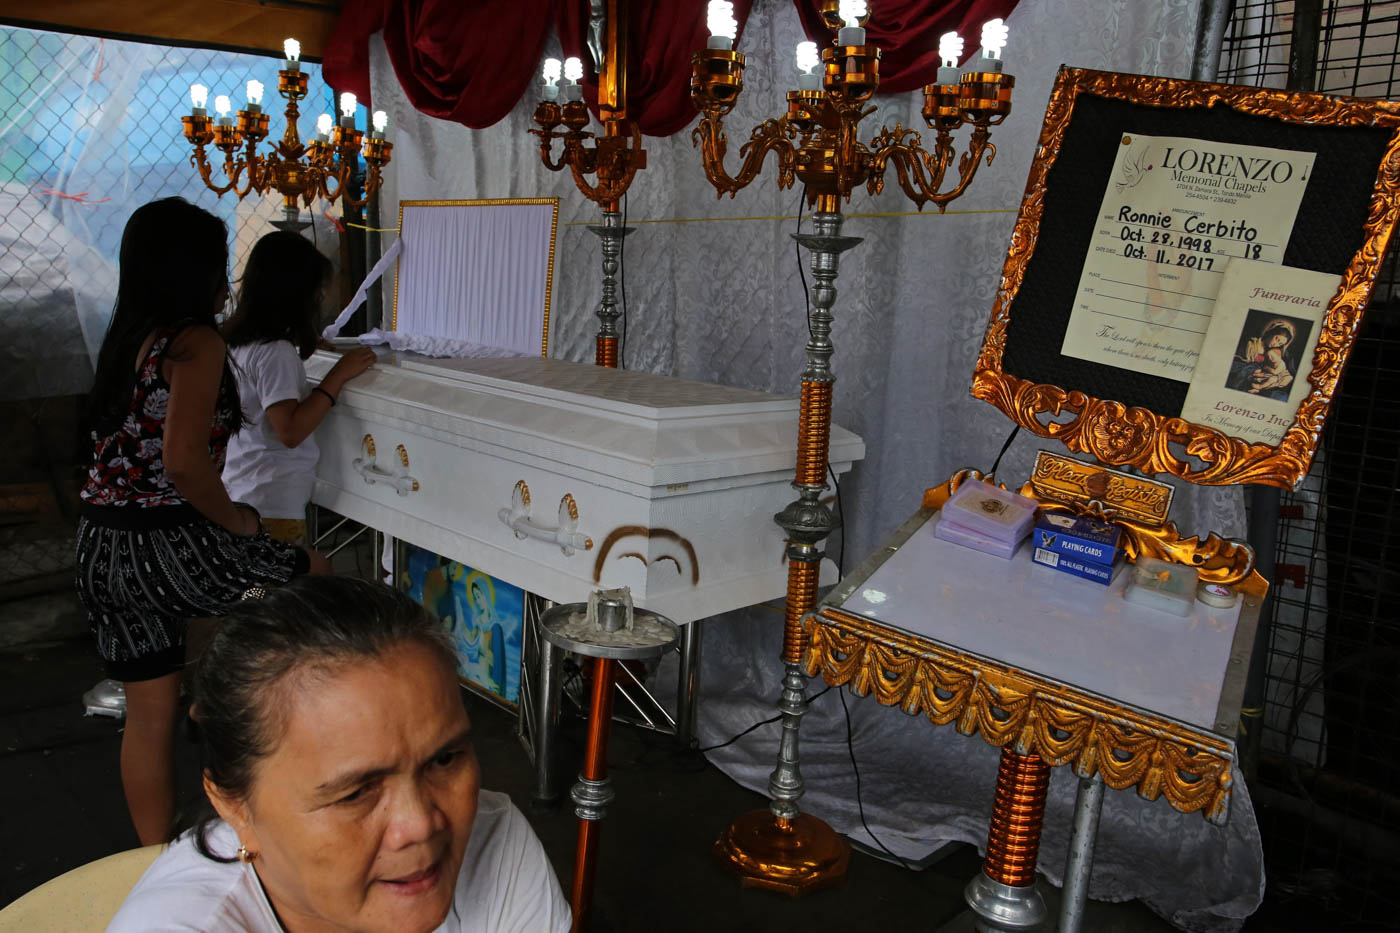 ANOTHER TEENAGER. Relatives and friends of Ronnie Cerbito pay their respects at his wake. He was abandoned as a child. His parents don't know that he is dead. Photo by Kimberly dela Cruz